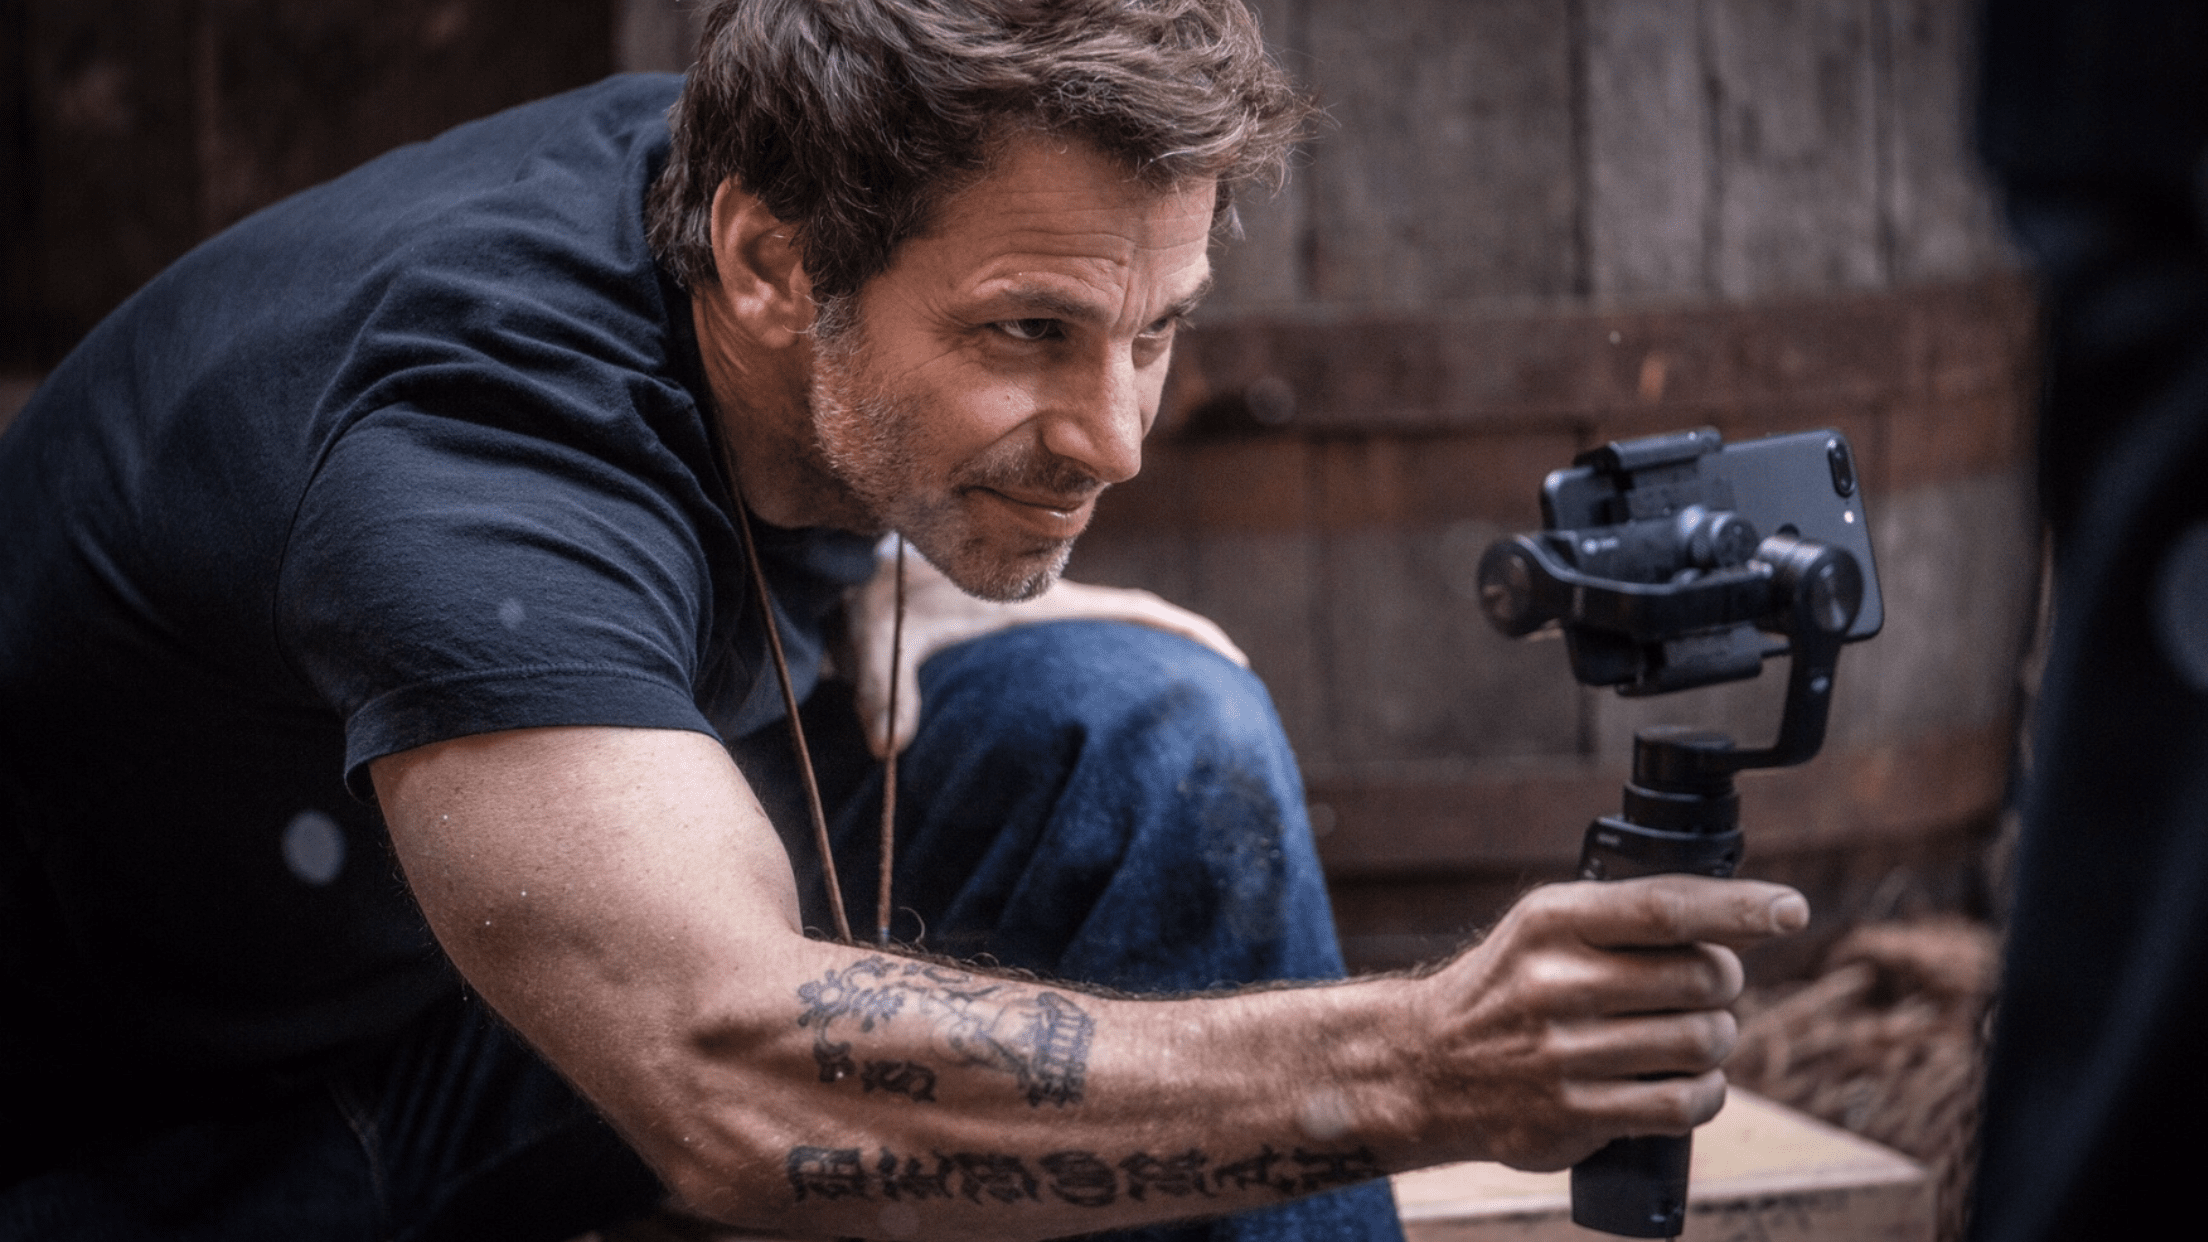 Zack Snyder uses Beastgrip Pro for iPhone film Snow Steam Iron